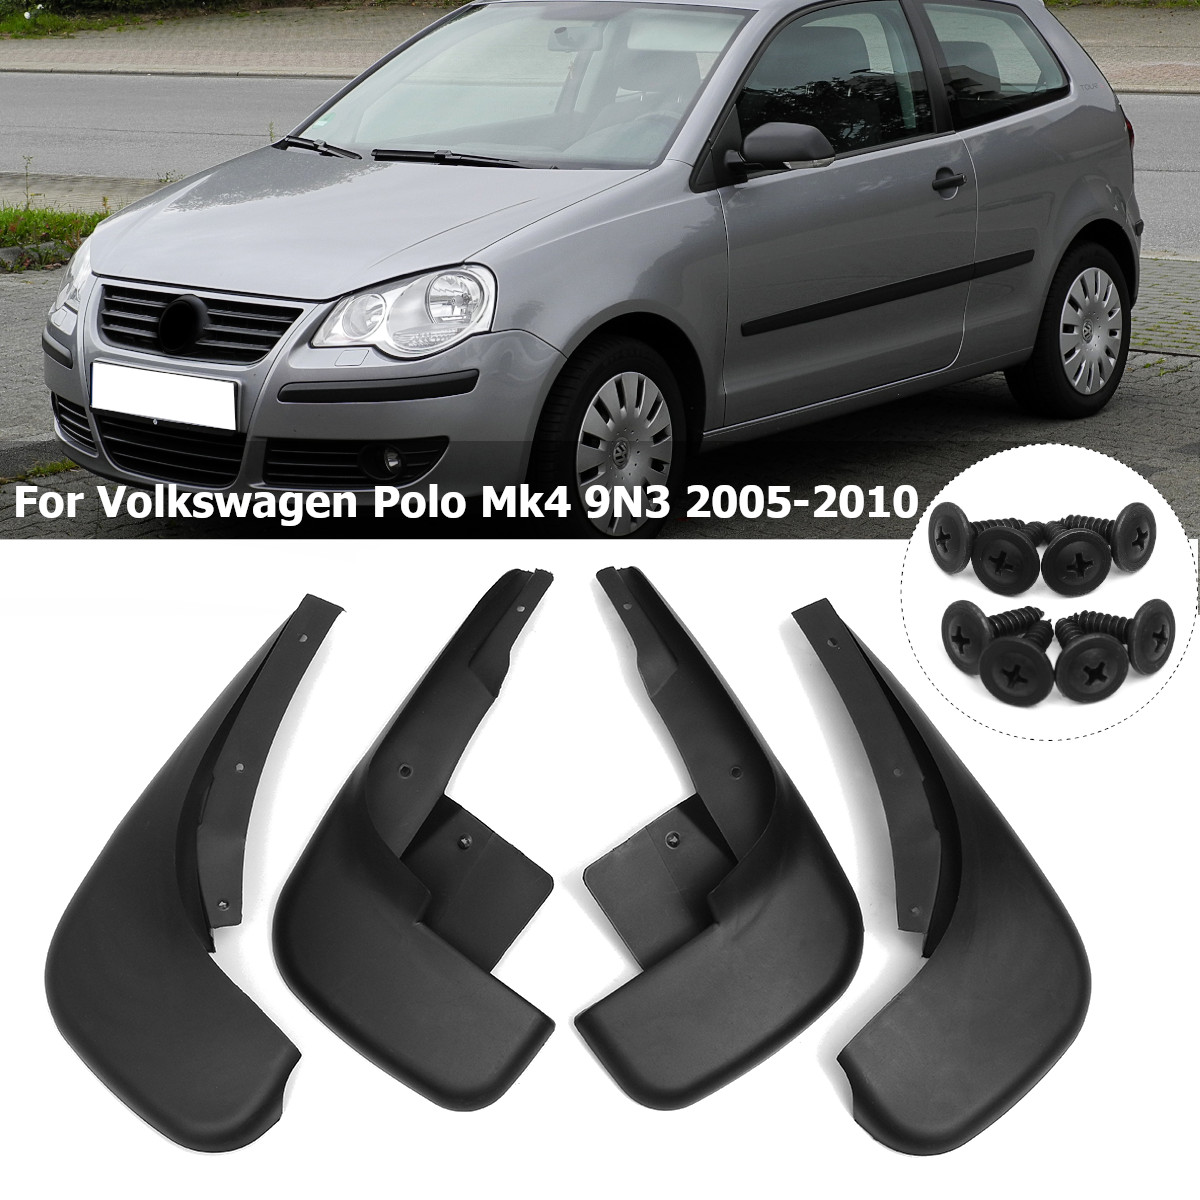 Mud Flaps for VW Polo Mk4 9N3 2005-2009 Car Fender Splash Guards Front Rear Mudguard Mudflaps Accessories